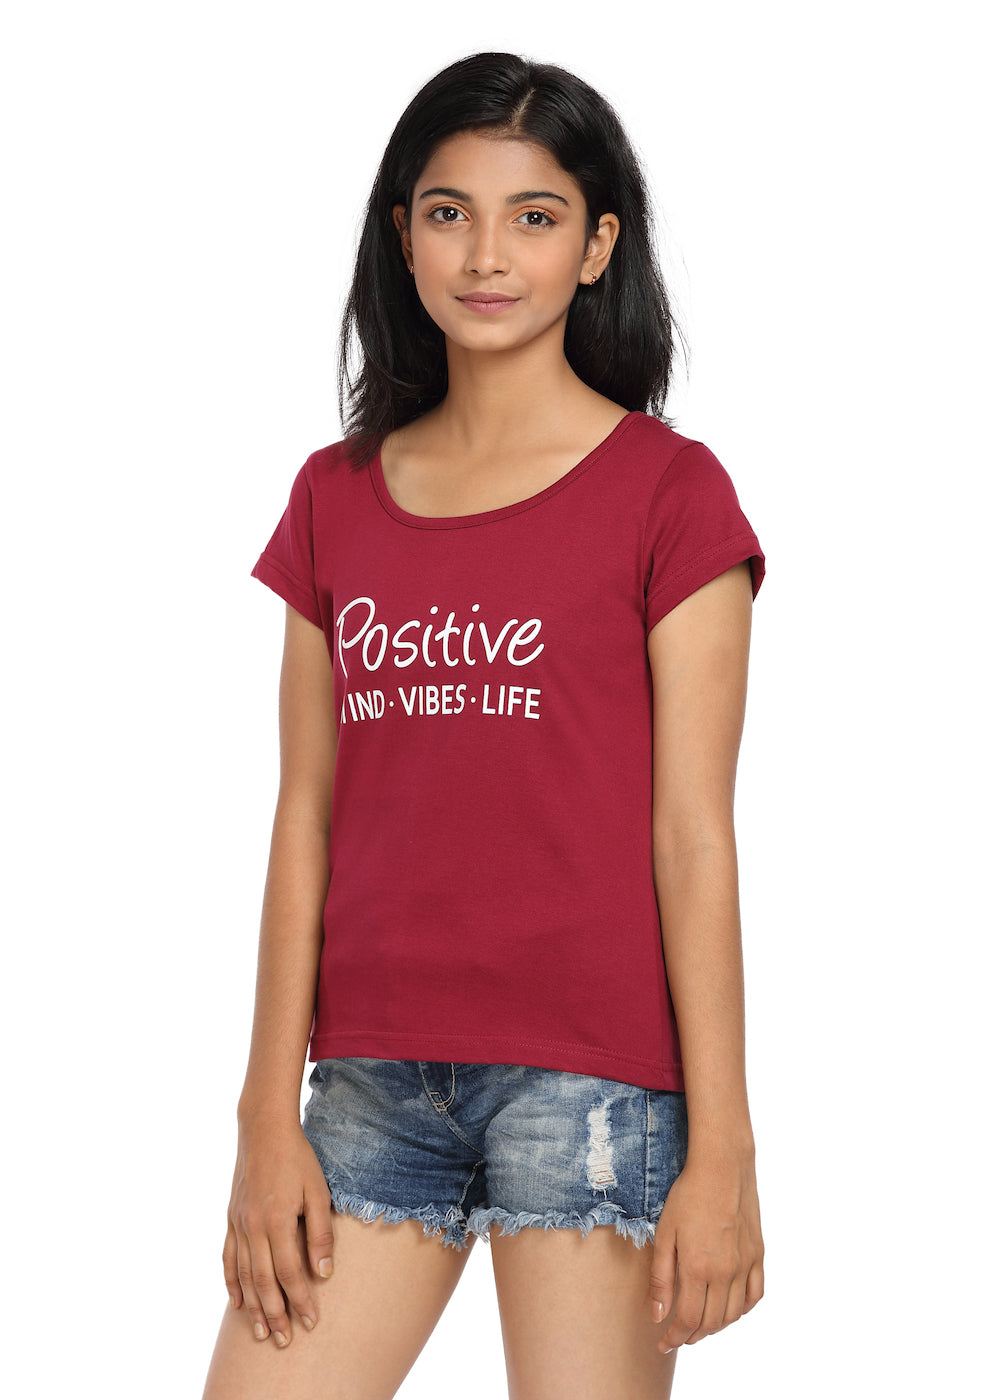 Printed T-shirt Wine Color with Positive Life Print - GENZEE